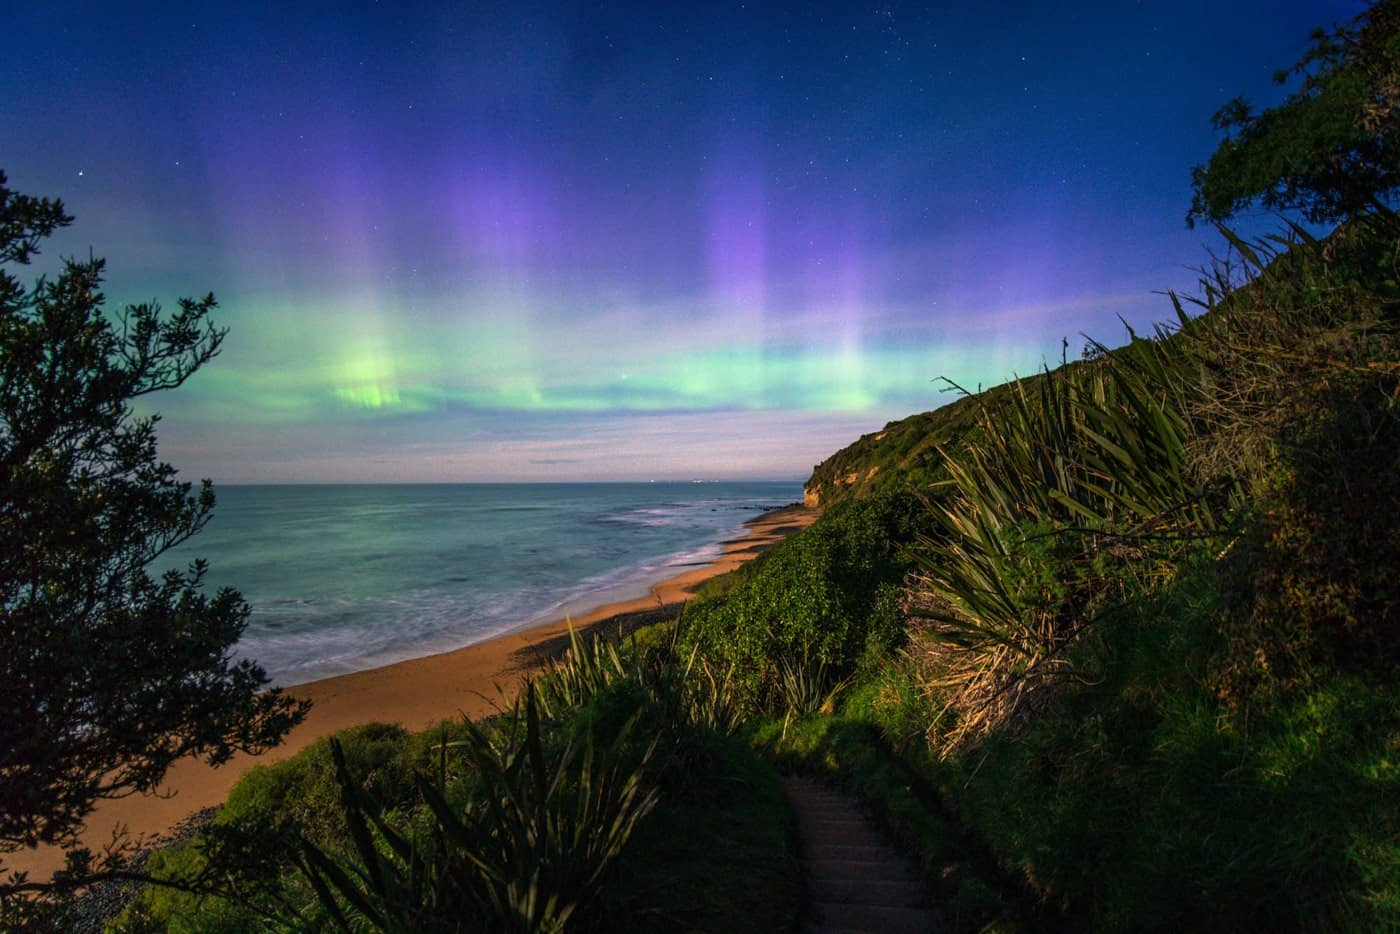 September is the best time to visit New Zealand if you want to photograph Aurora Australis (Southern Lights)